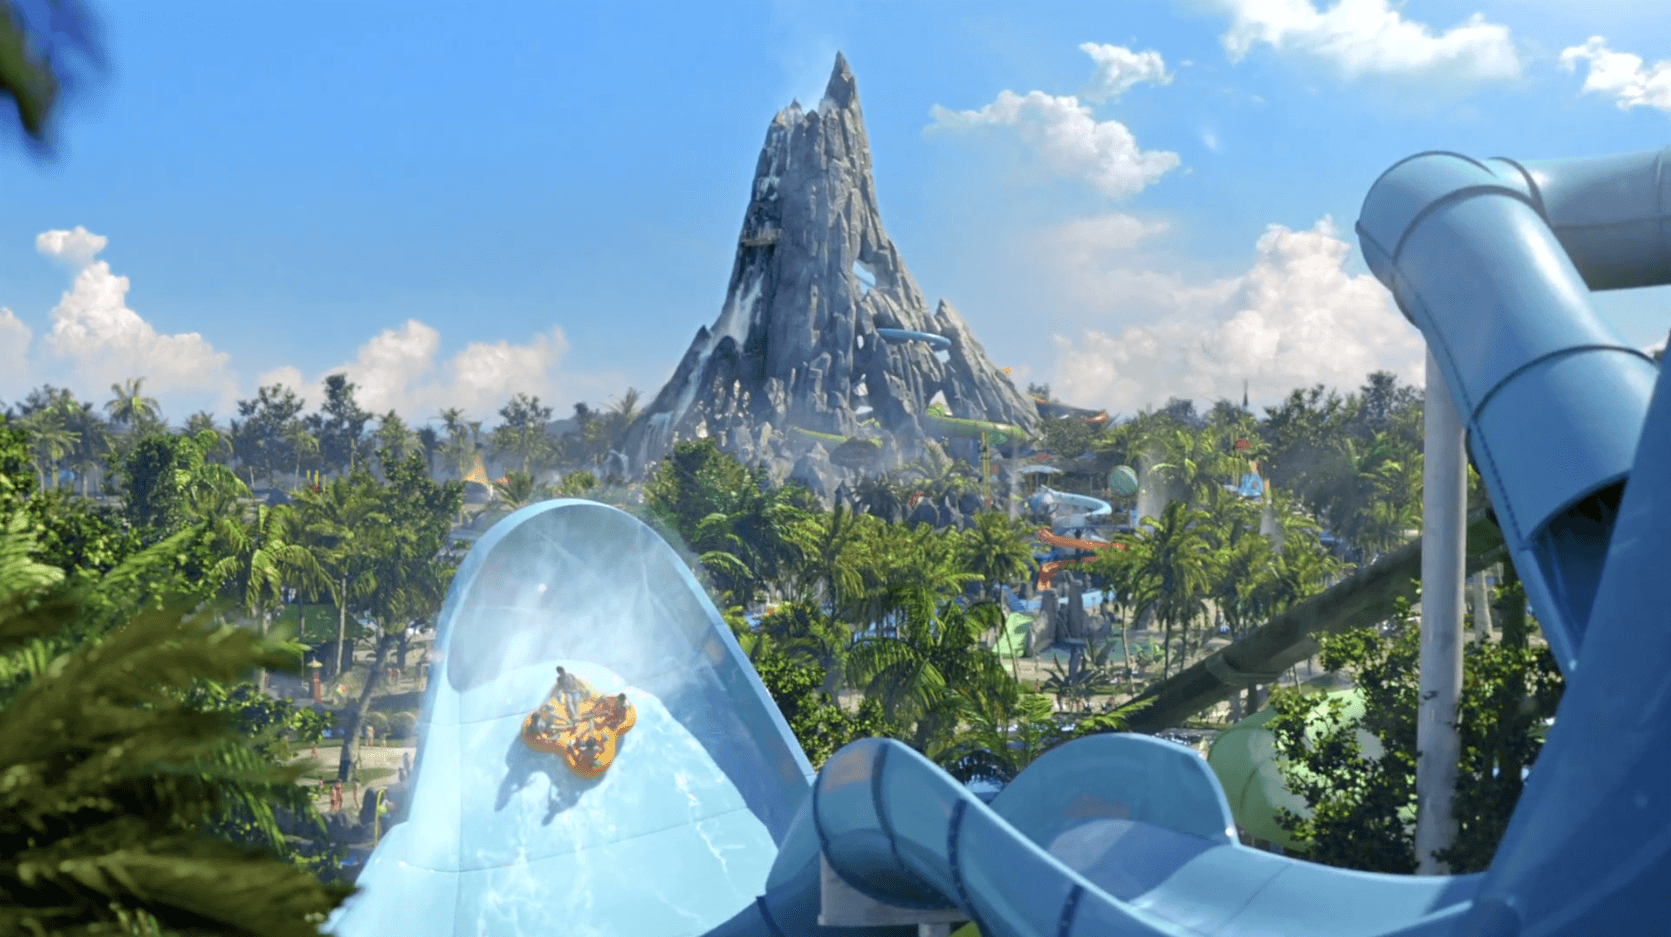 Universal's Volcano Bay story and attractions REVEALED